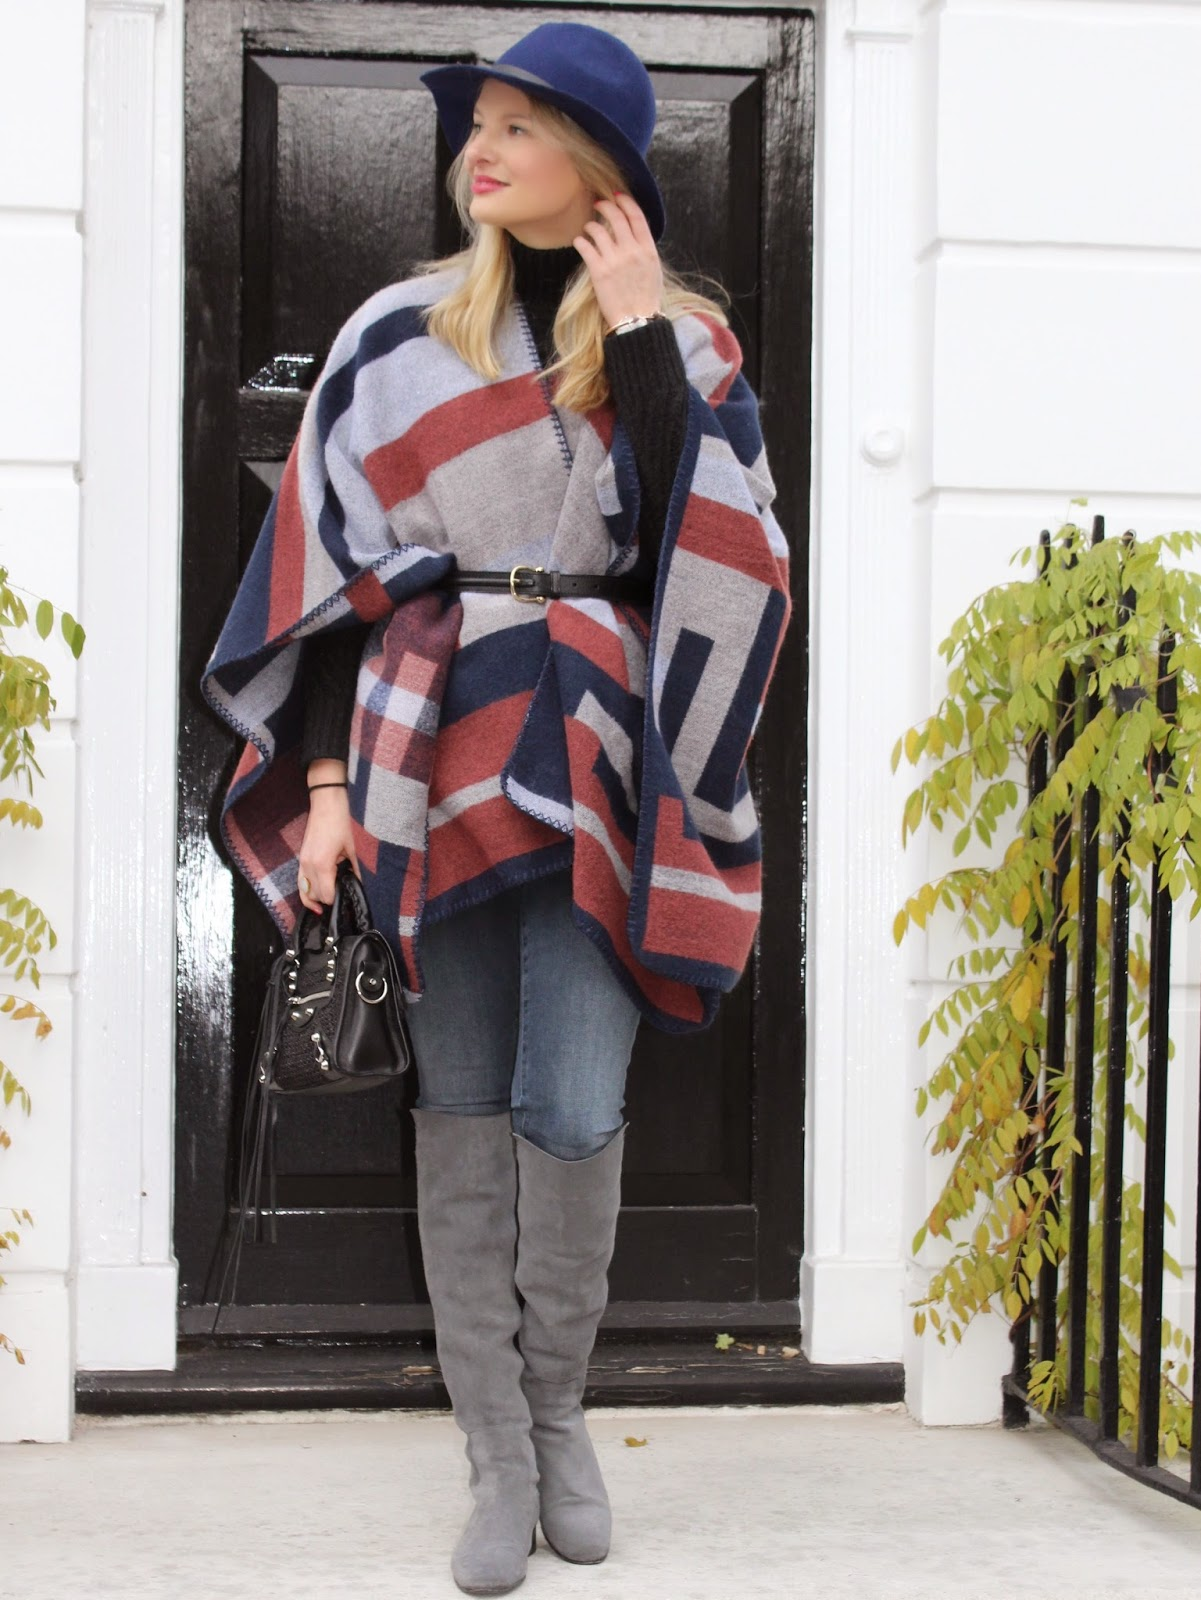 topshop blanket cape, blanket scarf, topshop fedora hat, blue fedora hat, grey overknee boots, balenciaga, balenciaga city mini black, fashion blogger london